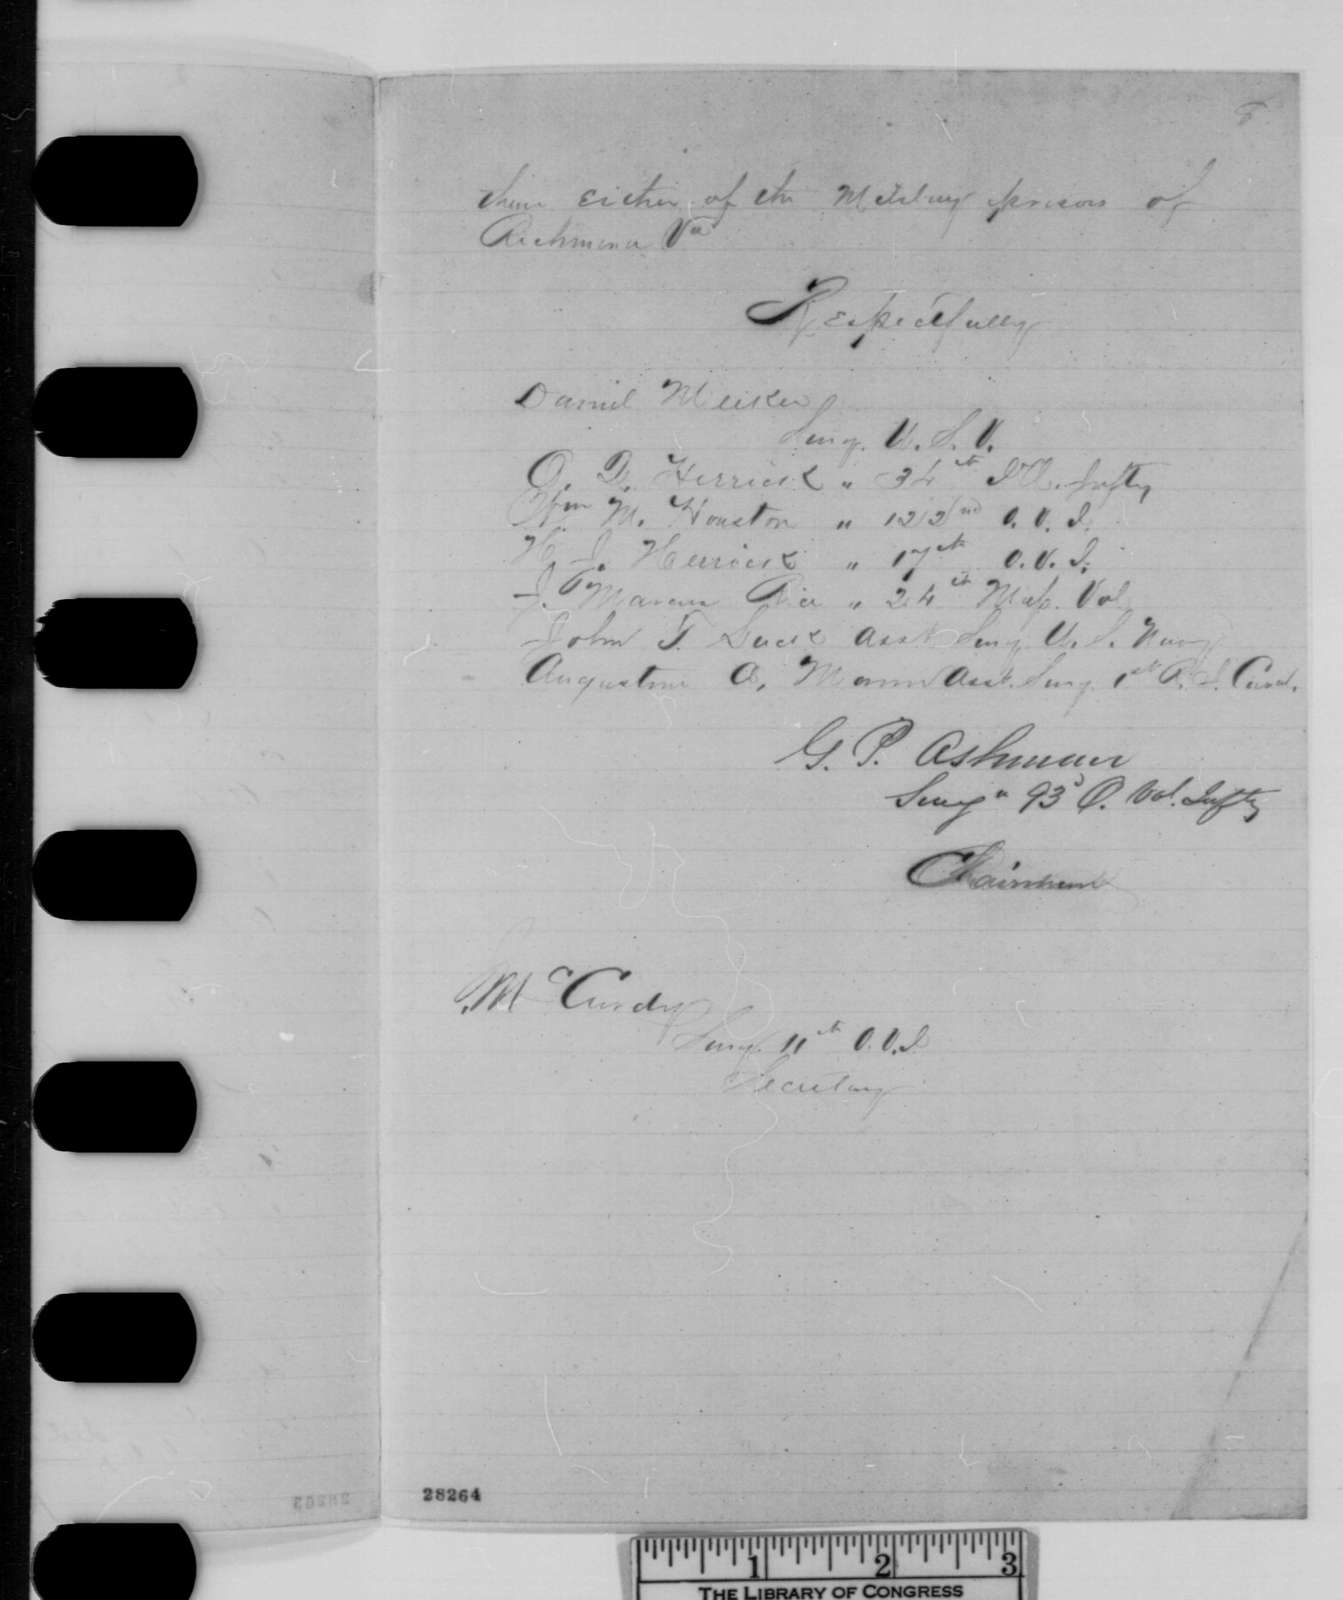 G. P. Ashmun, et al., Thursday, November 26, 1863  (Resolutions and report from surgeons held as prisoners of war)